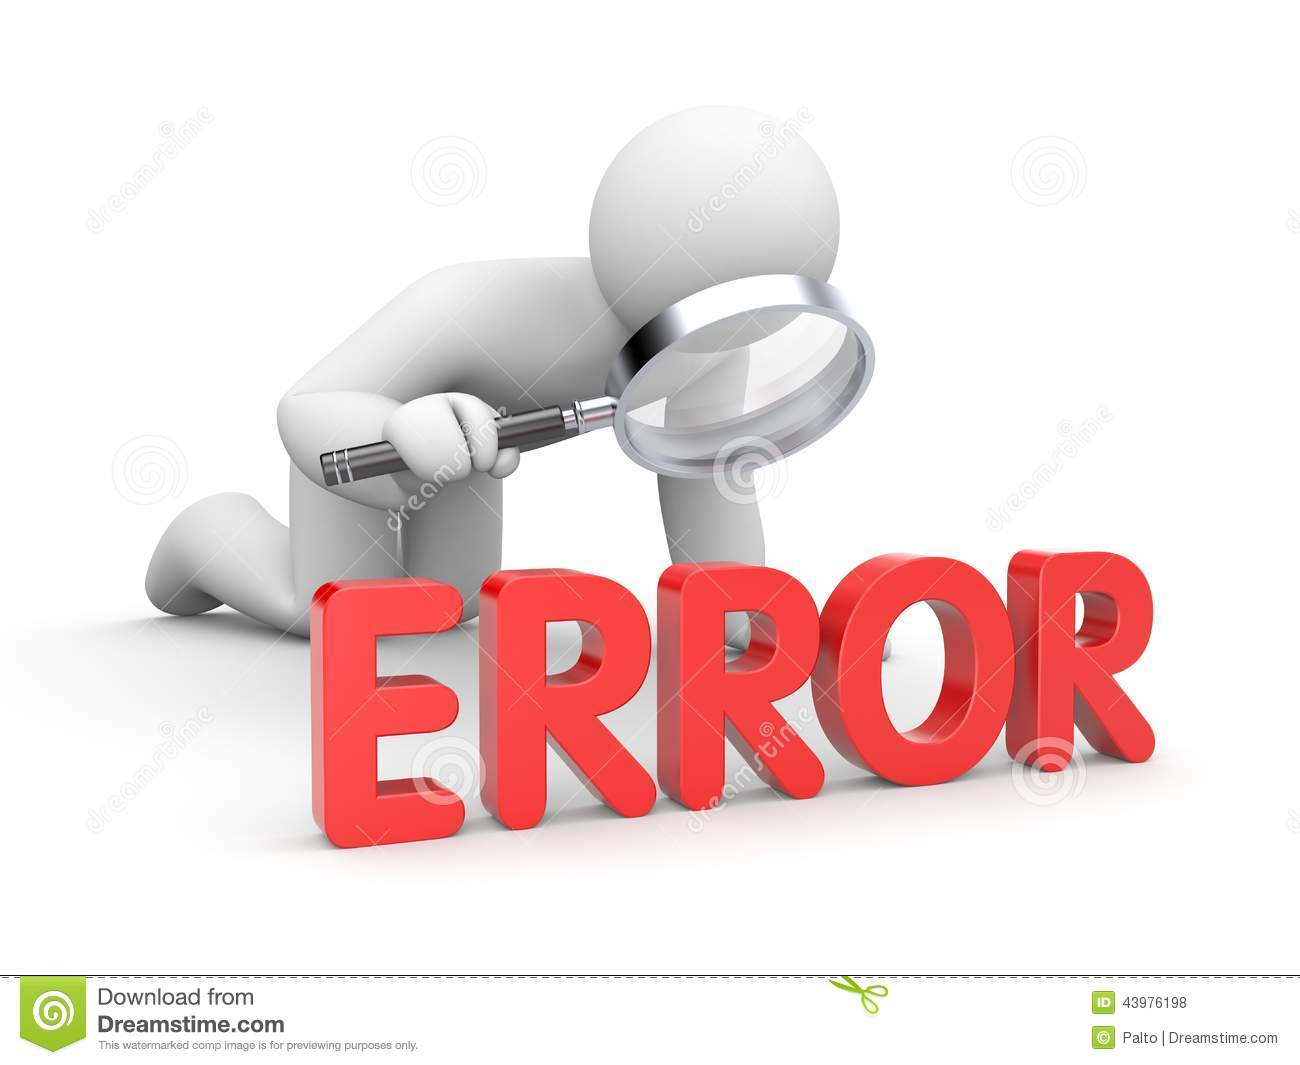 Error message clipart svg library download Error message clipart - ClipartFest svg library download